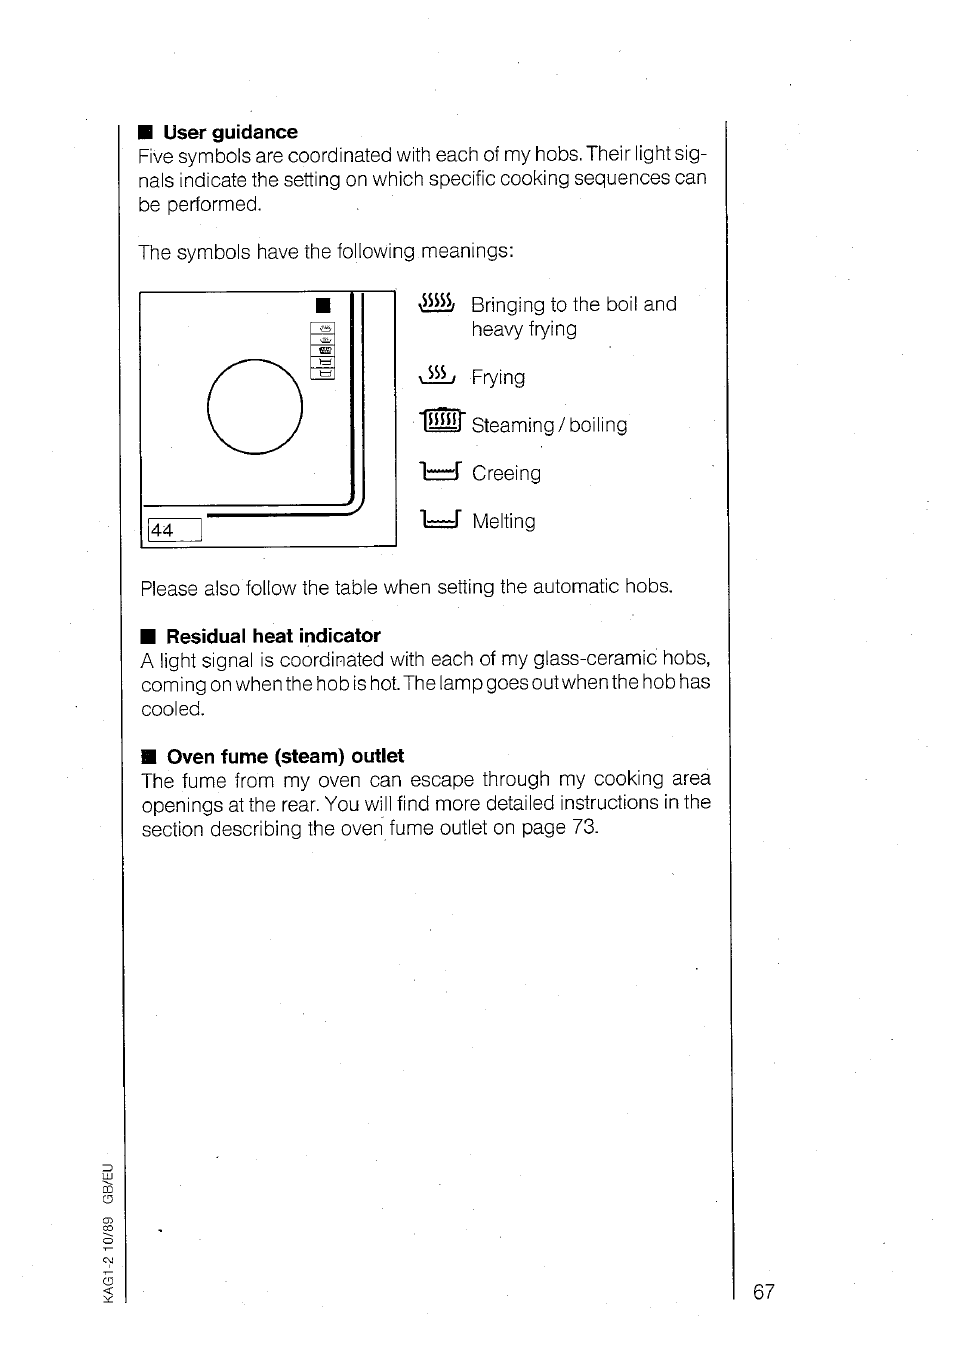 User Guidance Residual Heat Indicator Oven Fume Steam Outlet